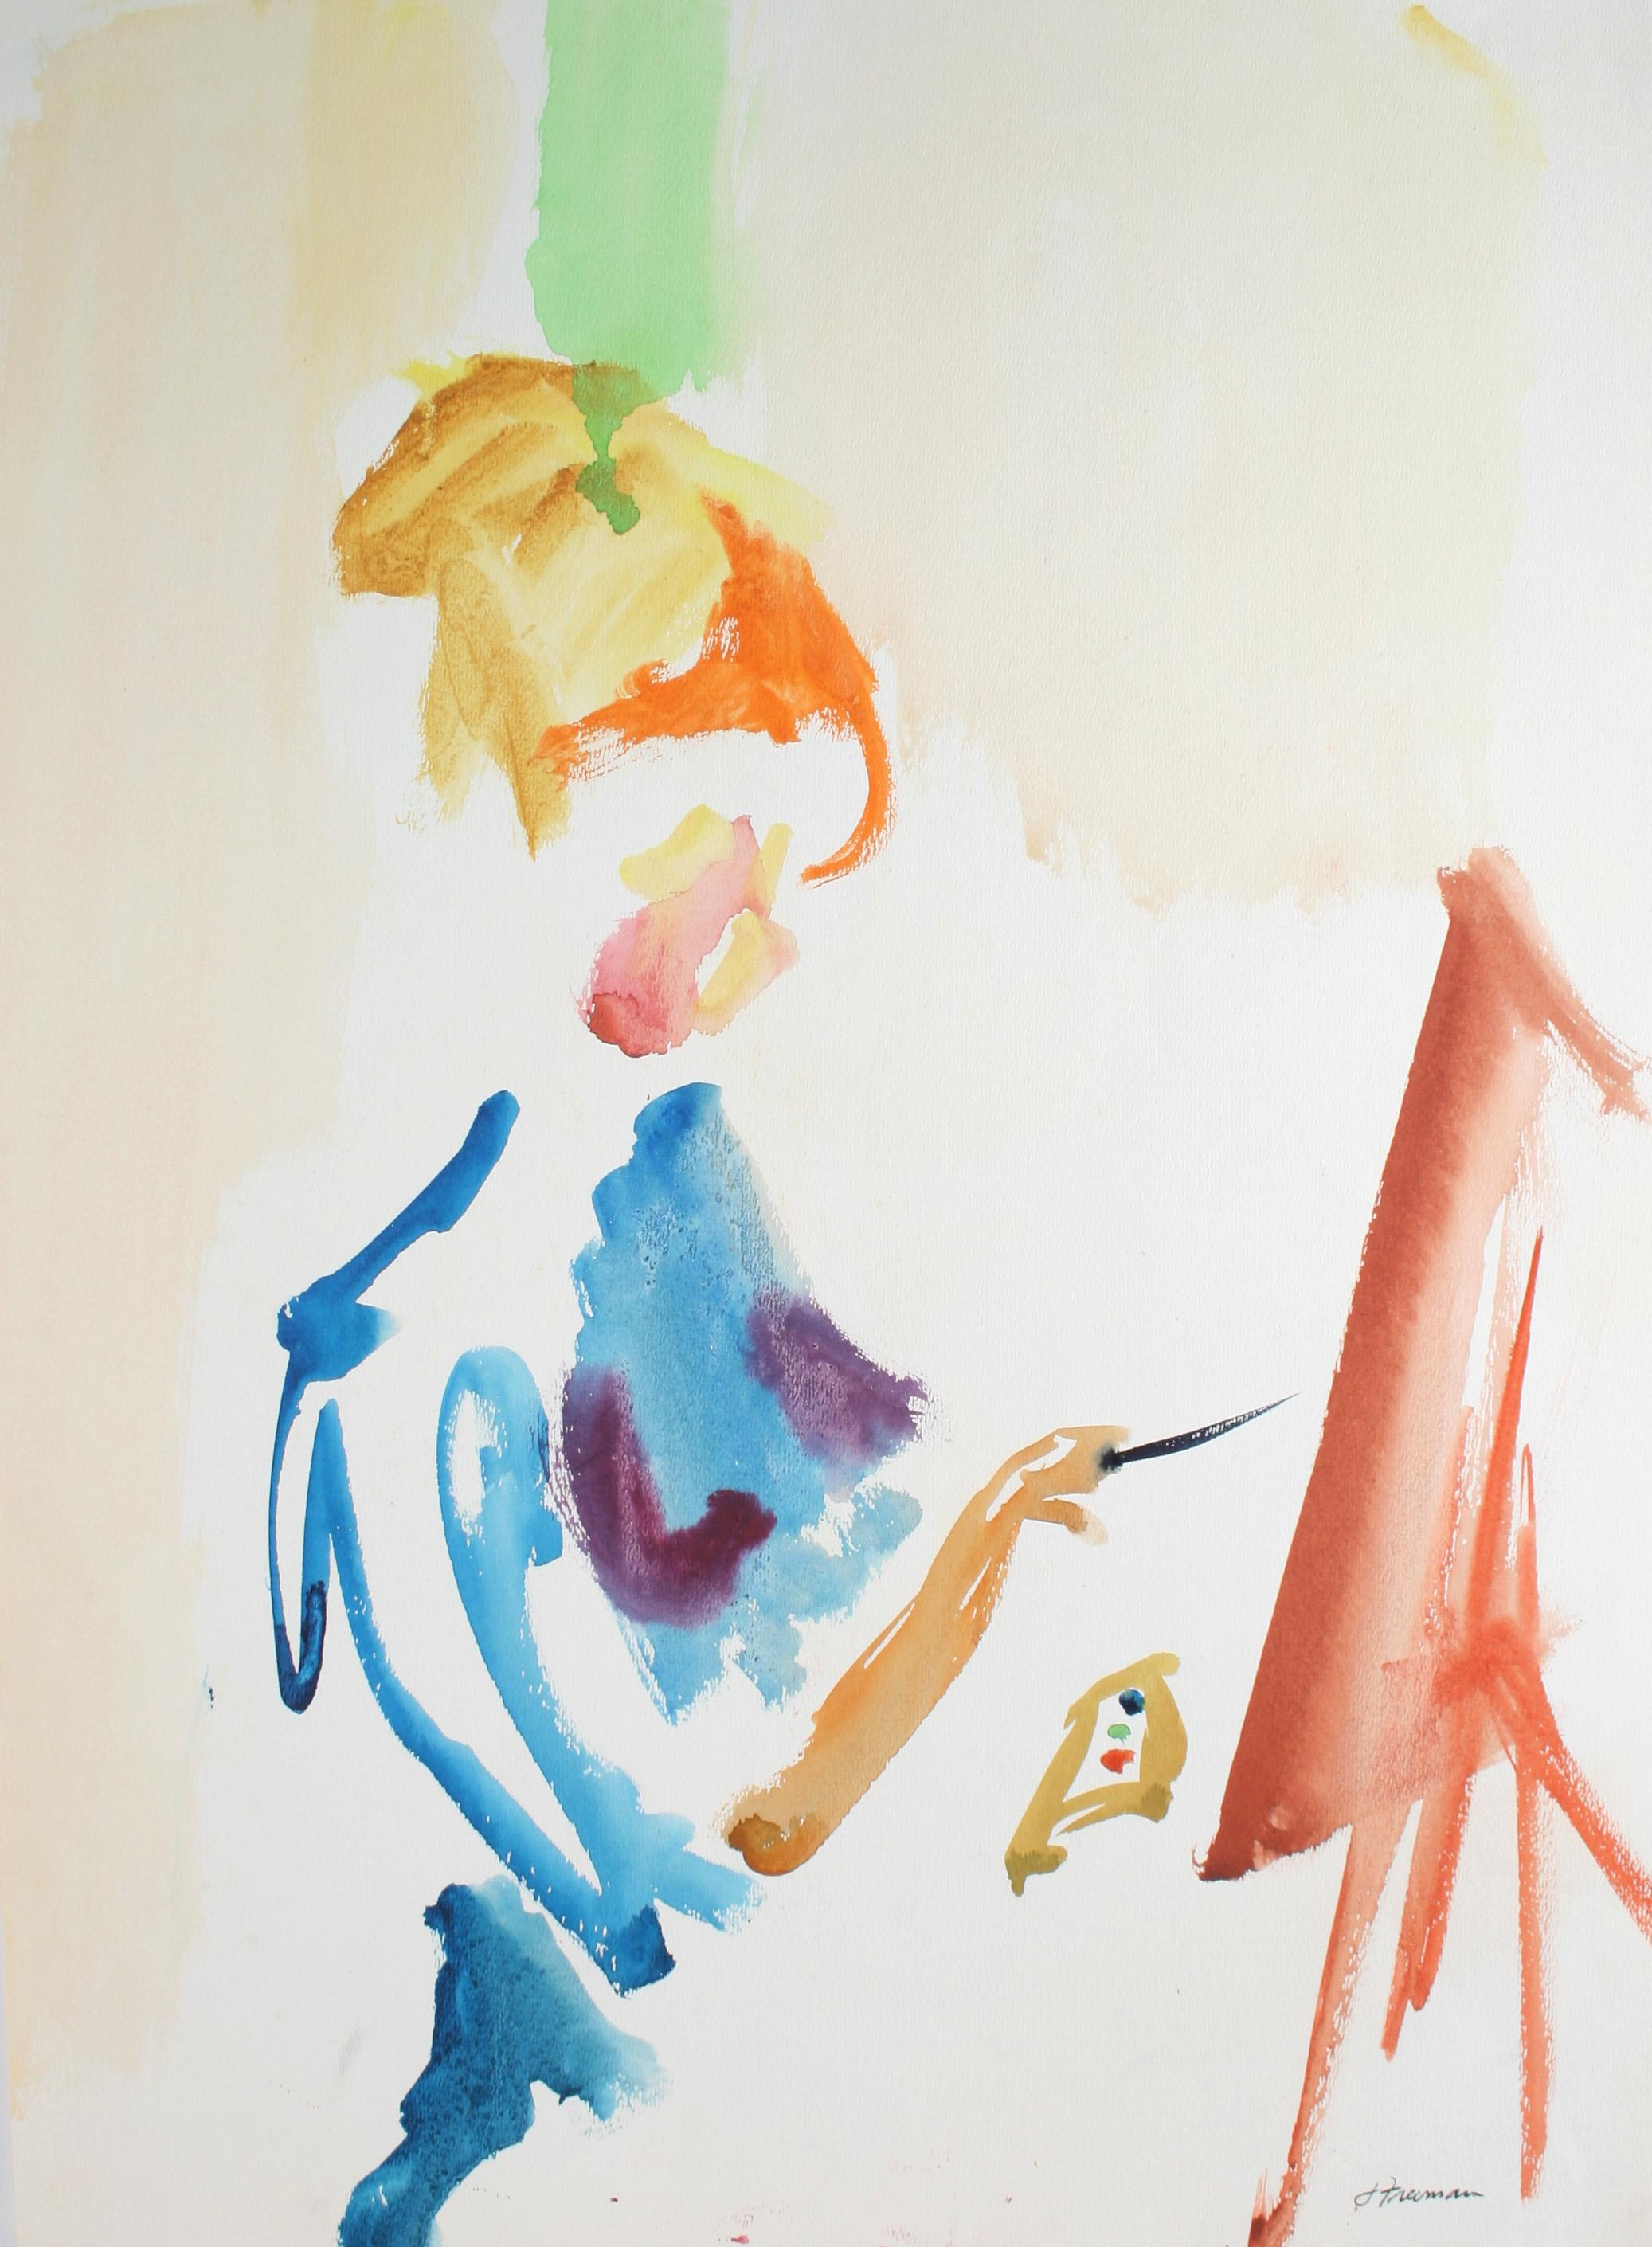 Portrait of a Female Artist, Watercolor on Paper, 20th Century